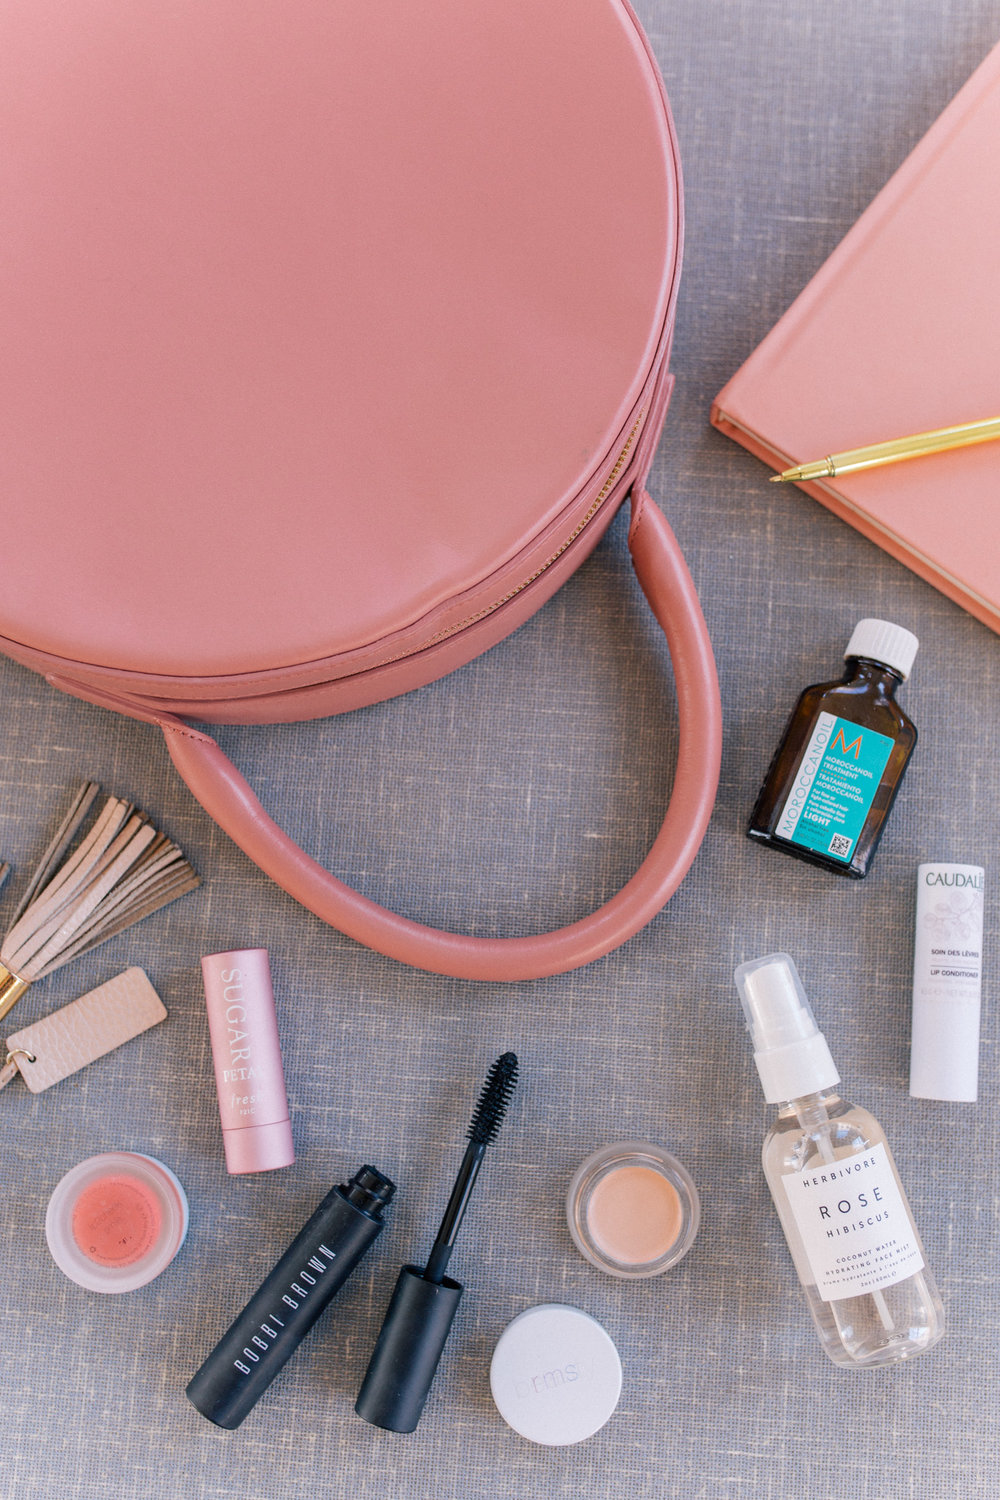 7 Beauty Items I Always Keep in my Handbag   Responsibilities: Creative concepting, art direction, flat lay styling, product photography, digital design and animation.  [Click the link above for the full post]